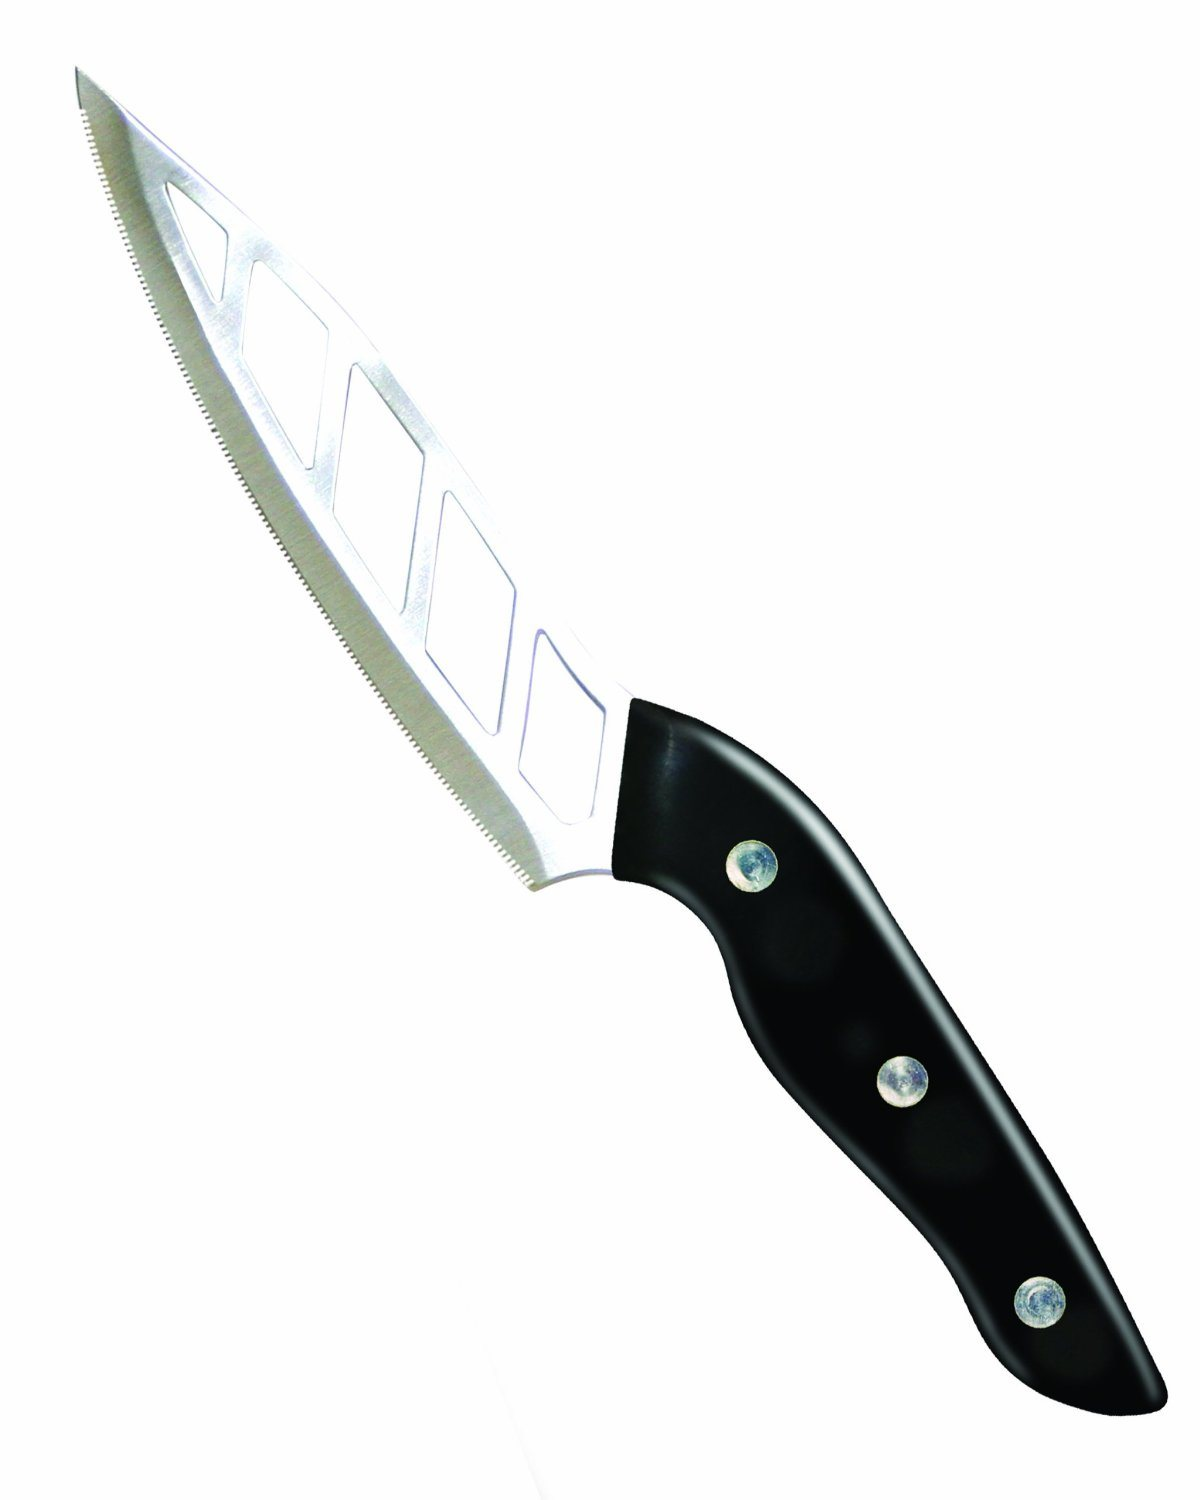 Aero Knife Kitchen Knife (AEK0212)